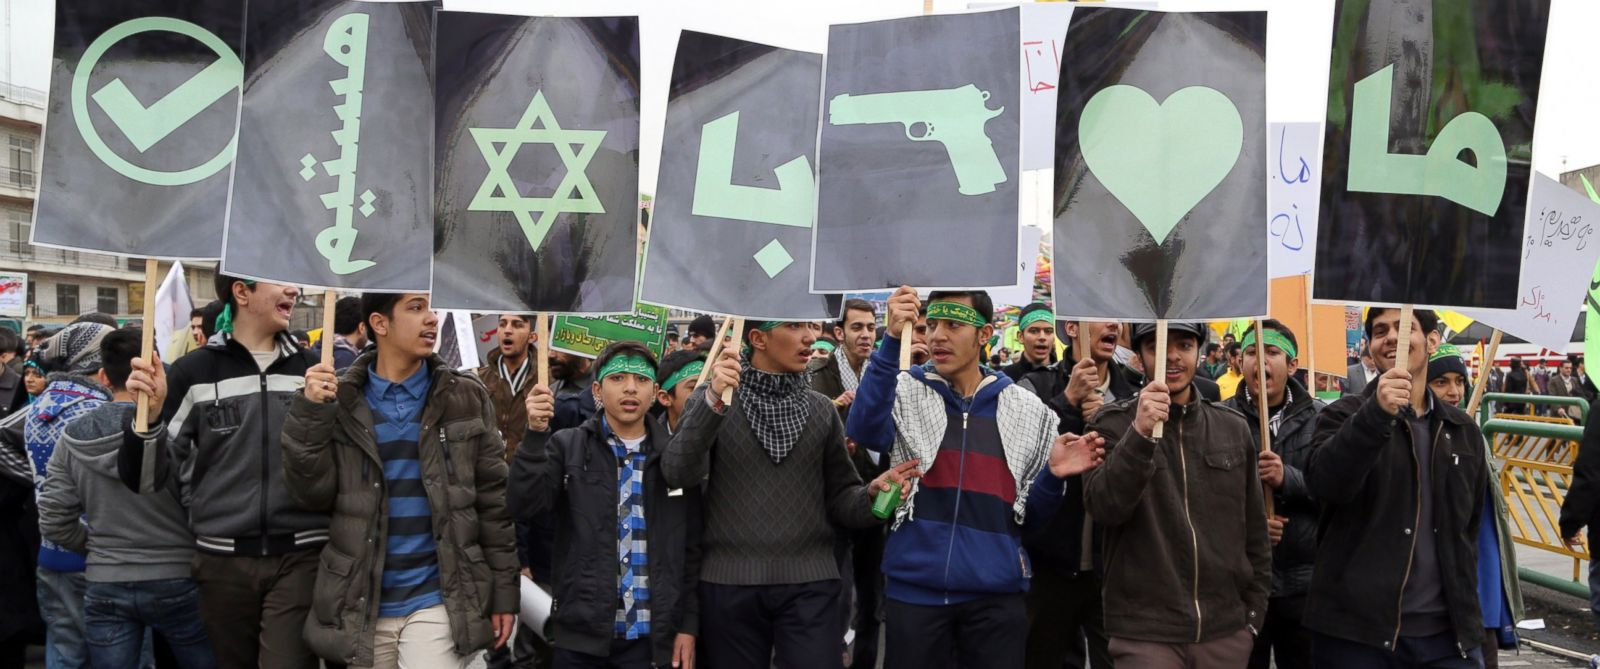 PHOTO: Iranians hold posters bearing signs and Persian text in favor of fighting Israel during a rally in Tehrans Azadi Square (Freedom Square) to mark the 36th anniversary of the Islamic revolution, Feb. 11, 2015.